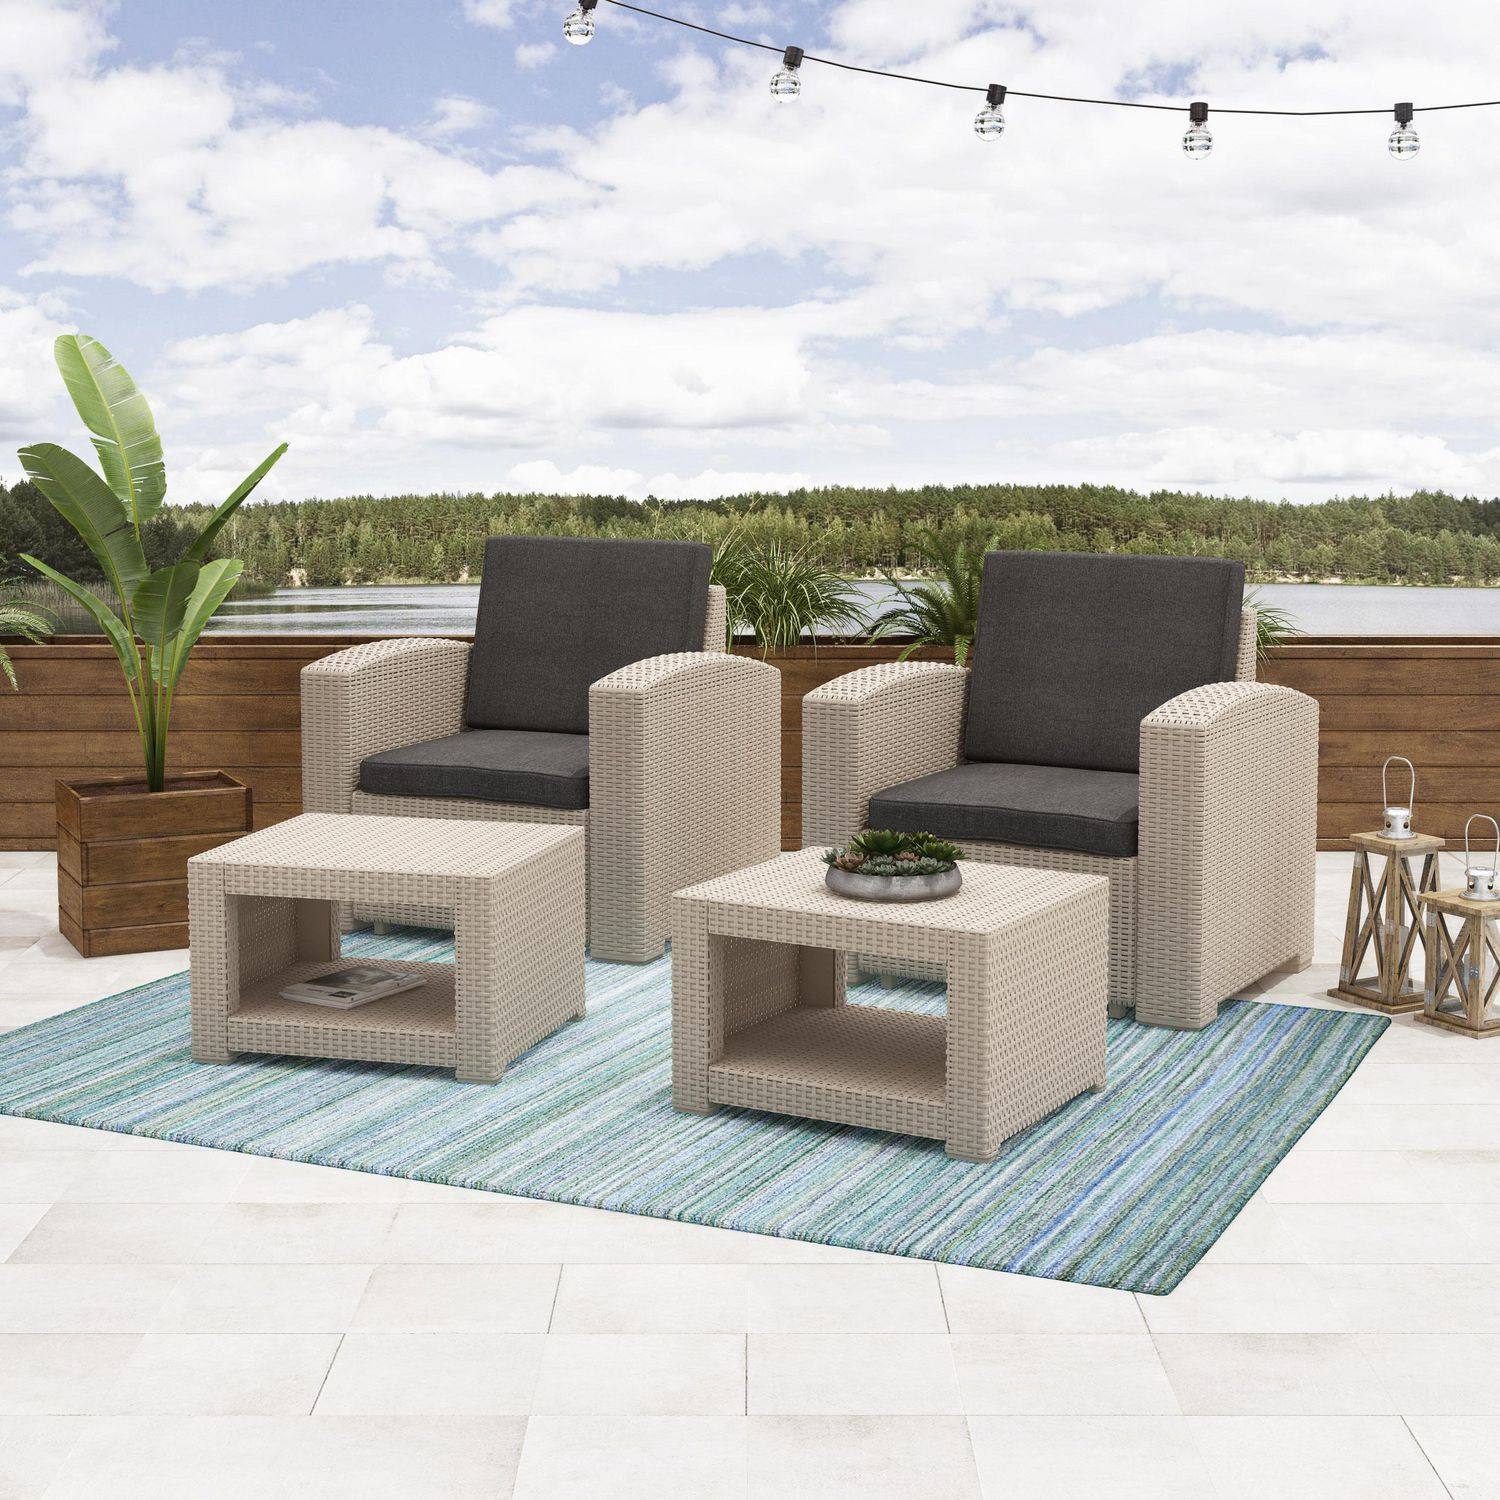 Incredible Corliving Adelaide 4Pc All Weather Resin Rattan Chair And Ottoman Patio Set Interior Design Ideas Gentotryabchikinfo